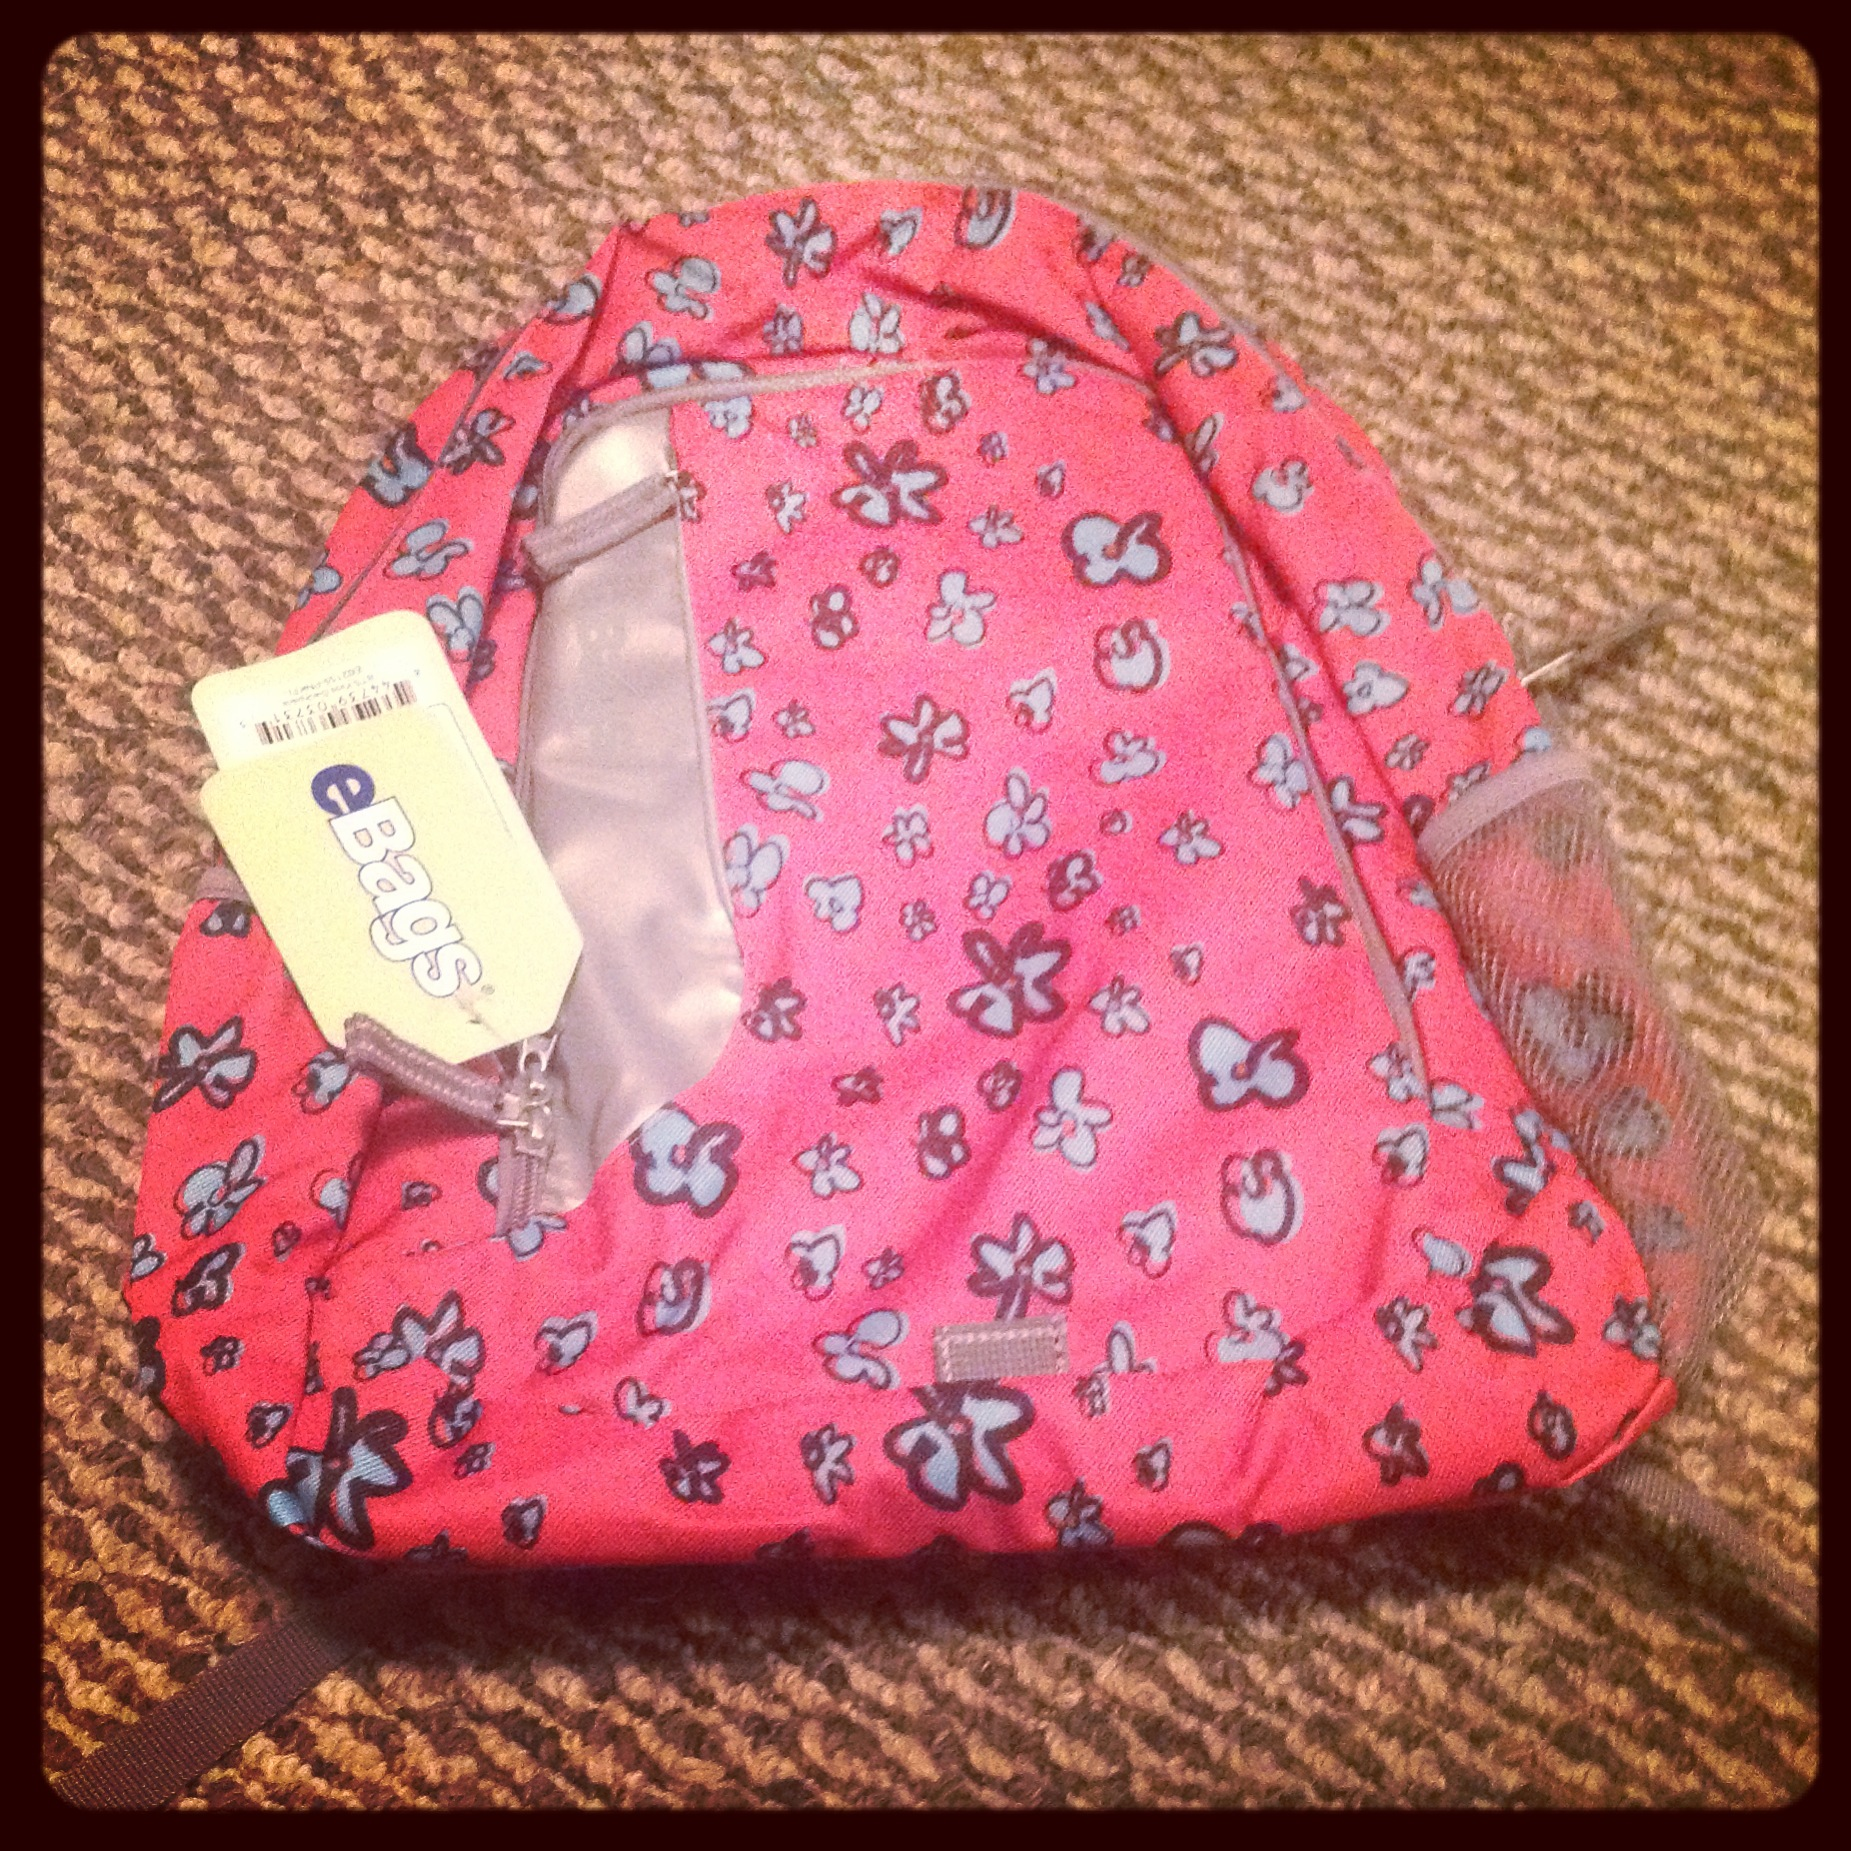 eBags Bookworm Kids' Pack Review